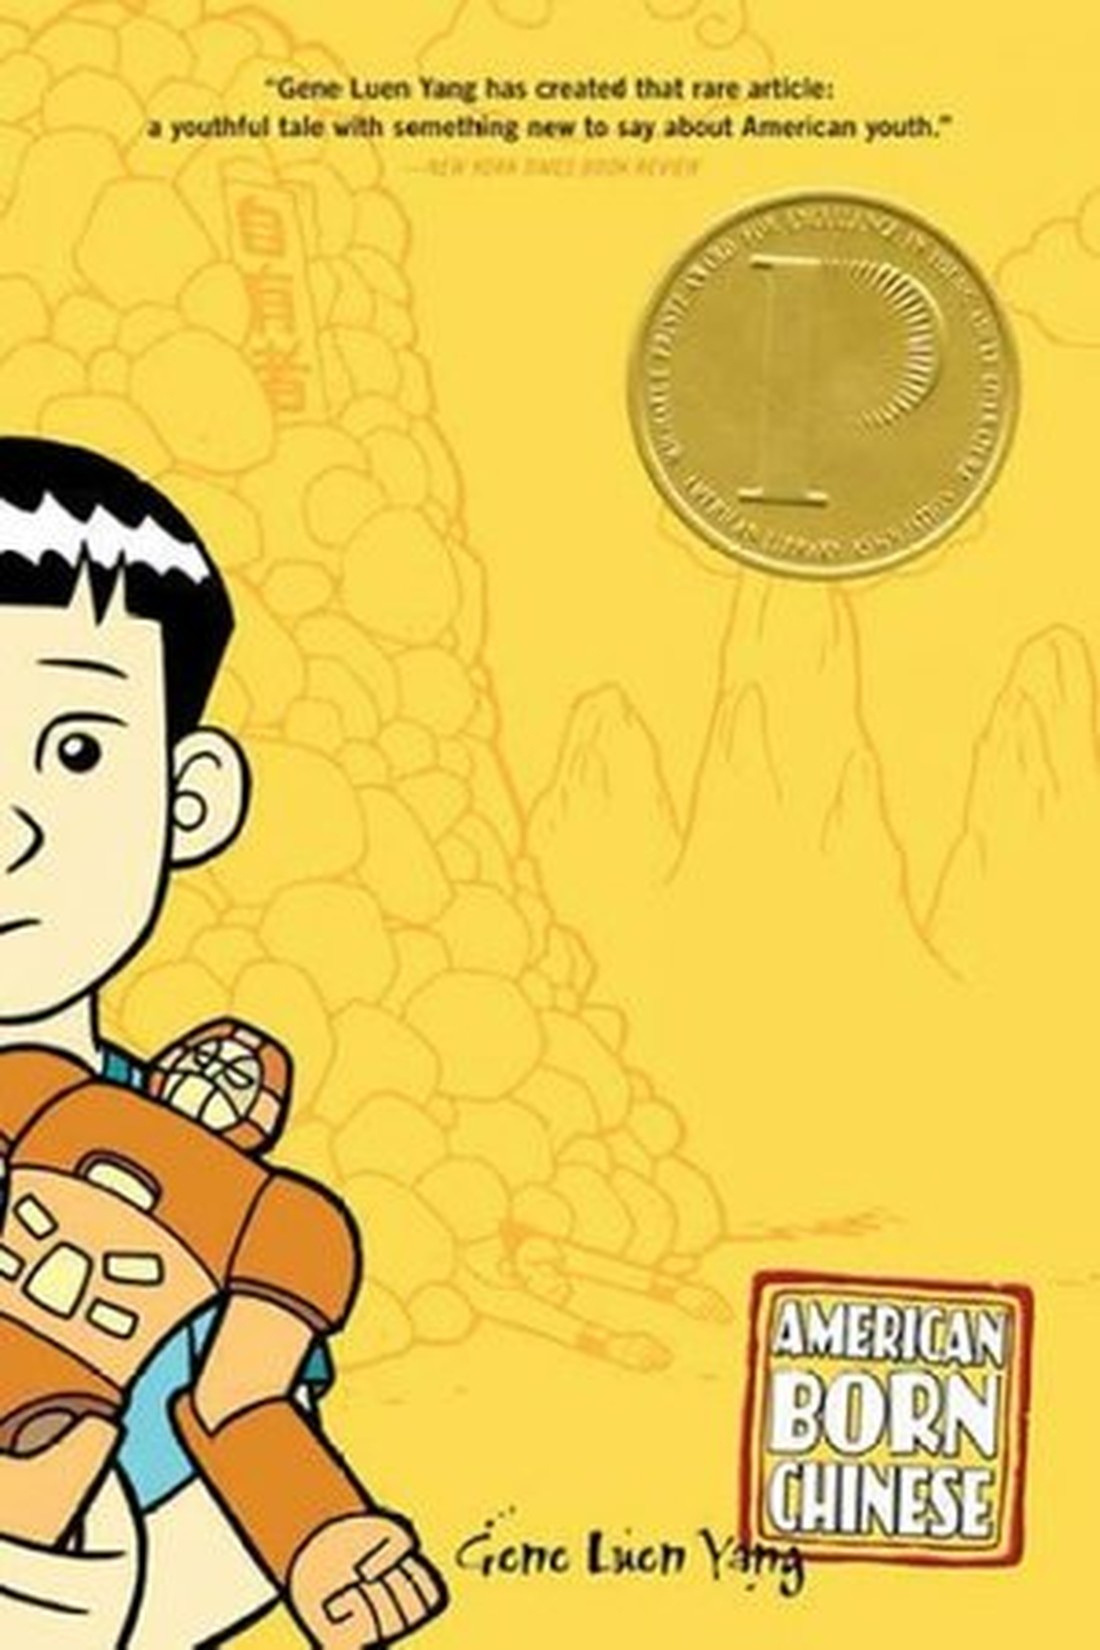 Alumnus and Graphic Novelist Gene Luen Yang Makes NPR's Top 100 List